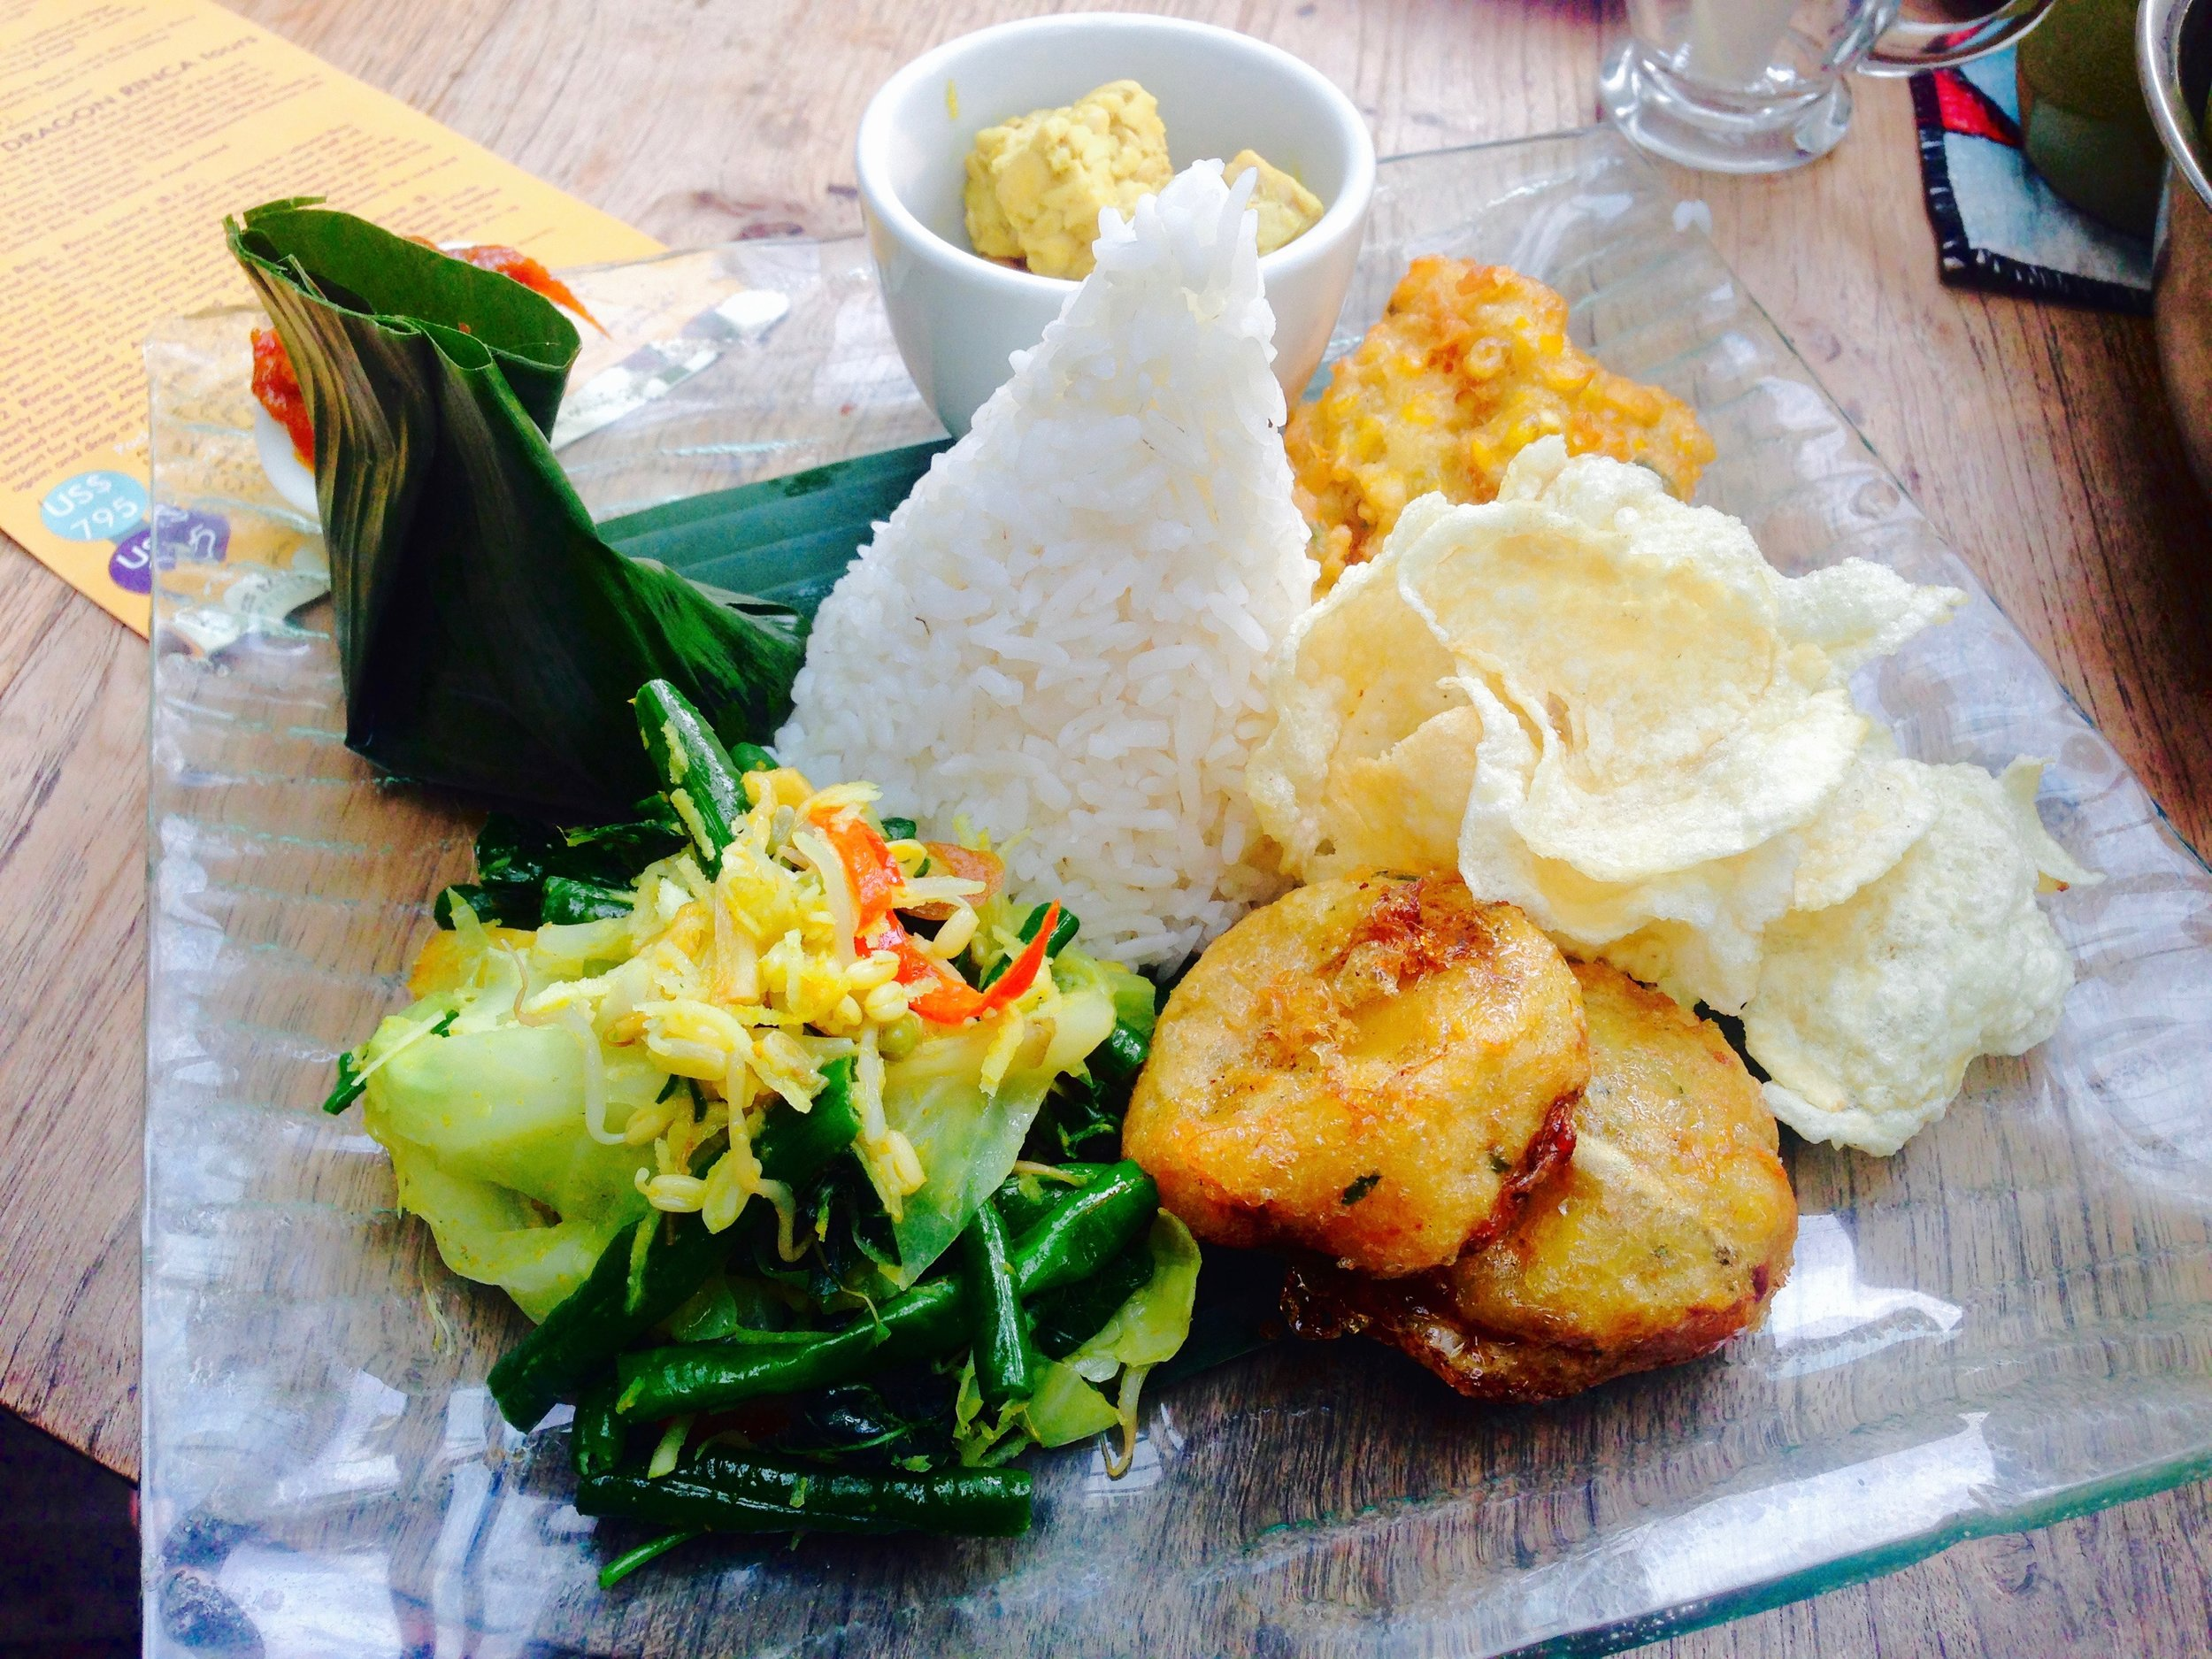 First Balinese meal after a long day of travel!Presentation is everything here.